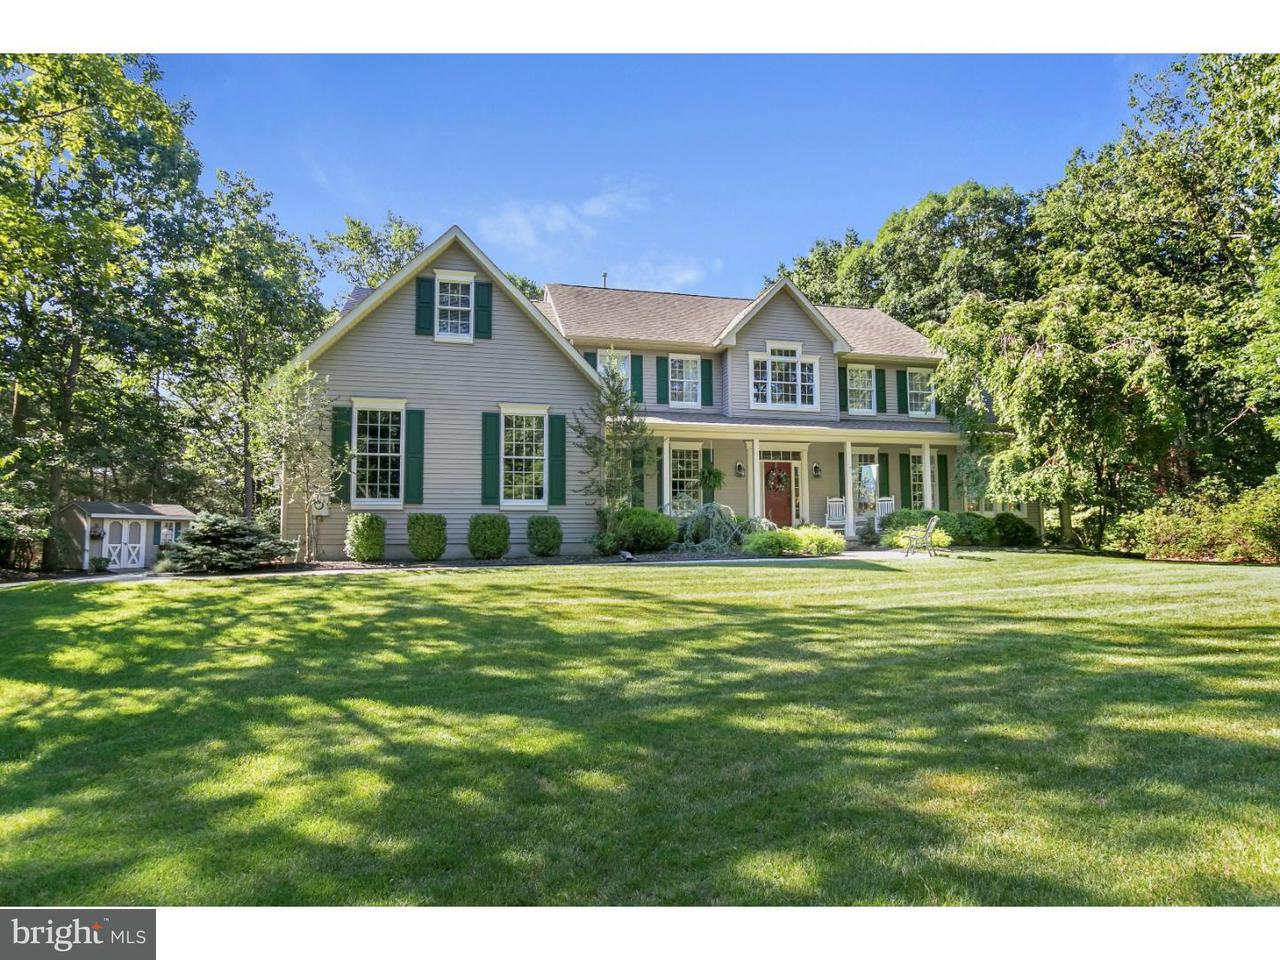 Single Family Home for Sale at 41A FOX HILL Drive Tabernacle, New Jersey 08088 United States